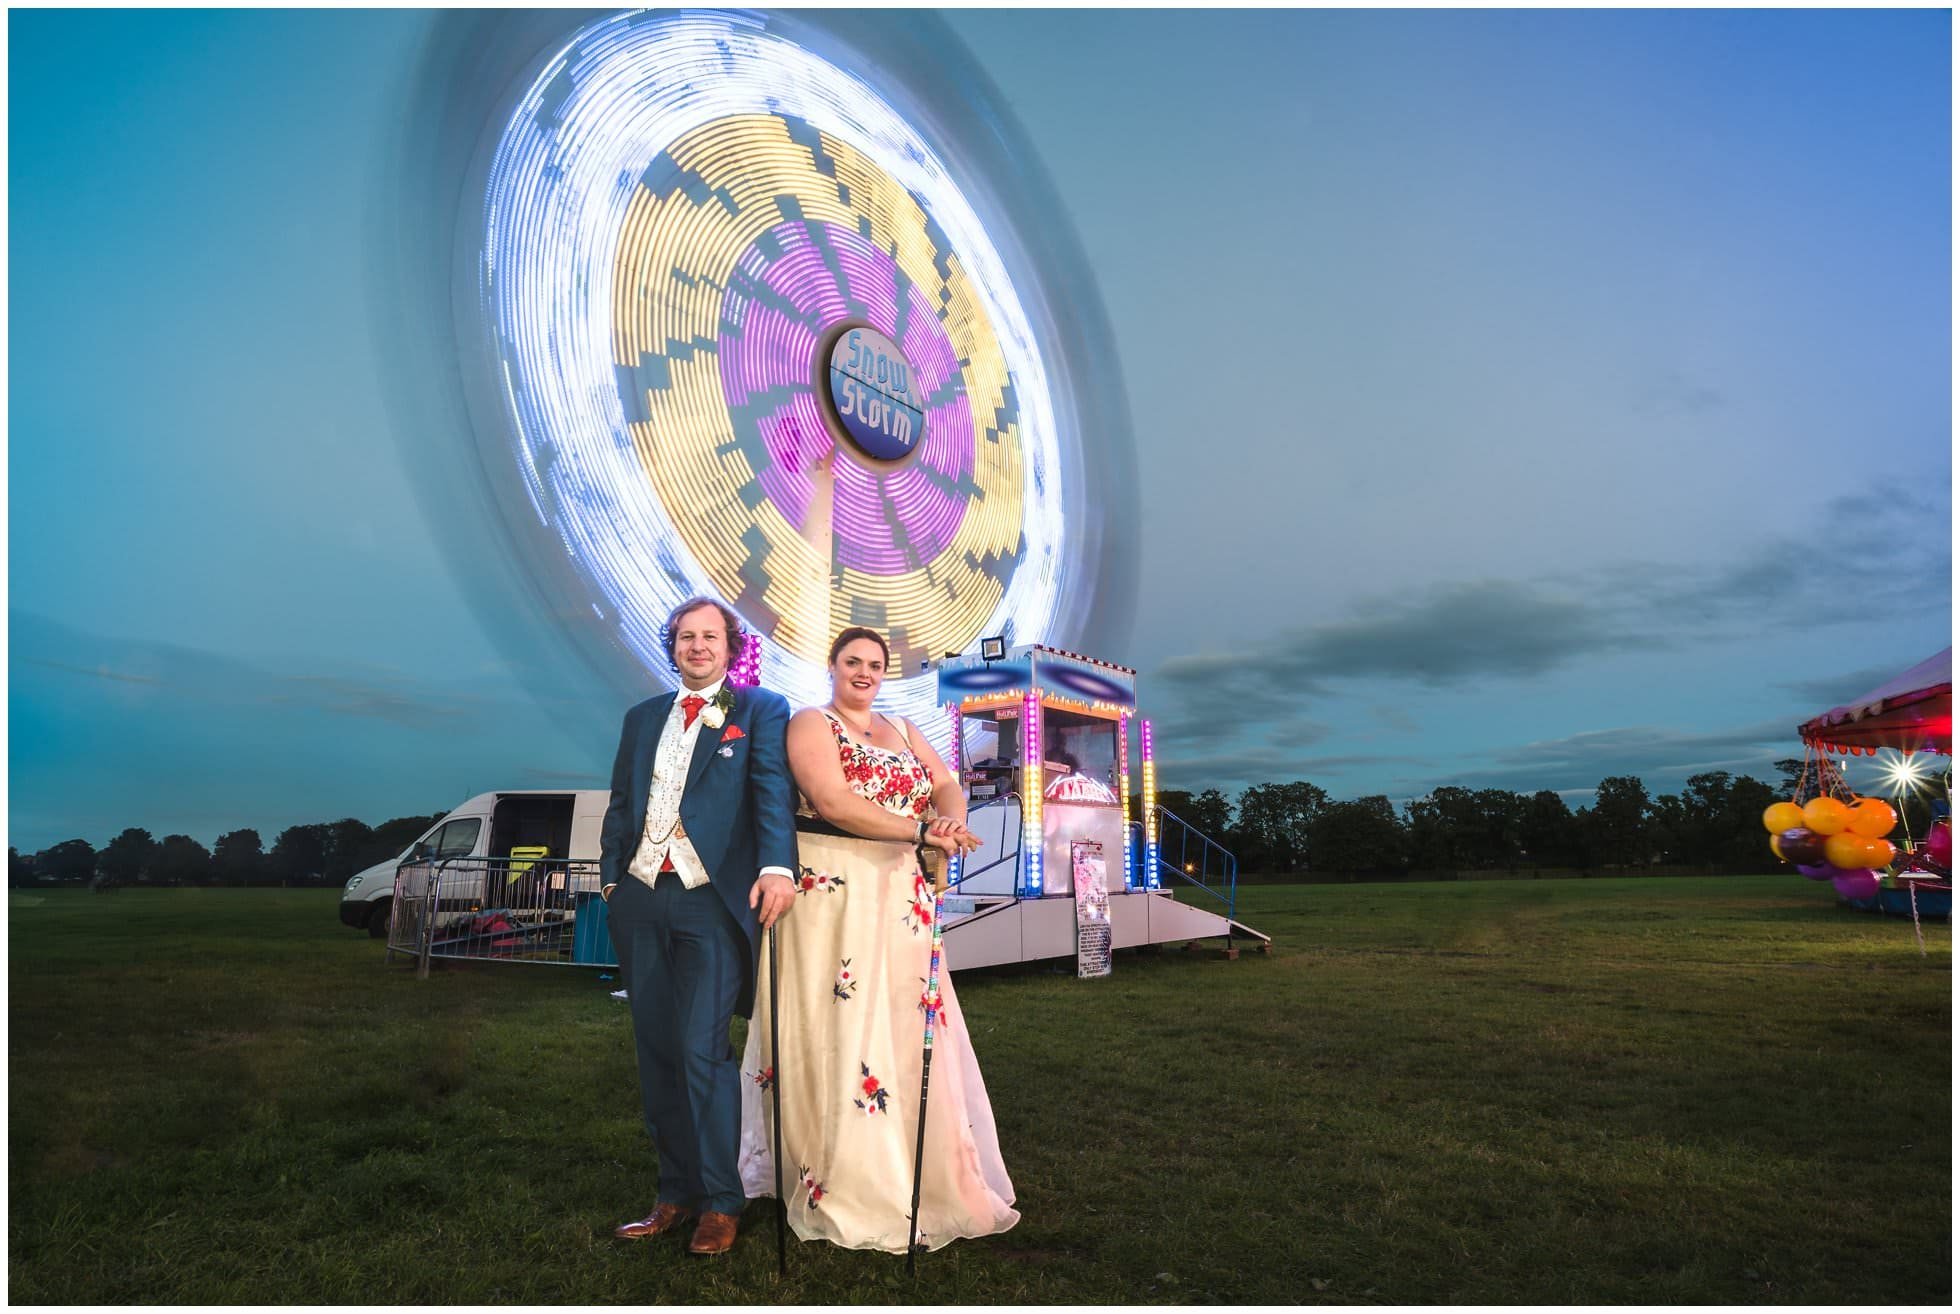 Wedding photography at a fun fair in North Yorkshire!